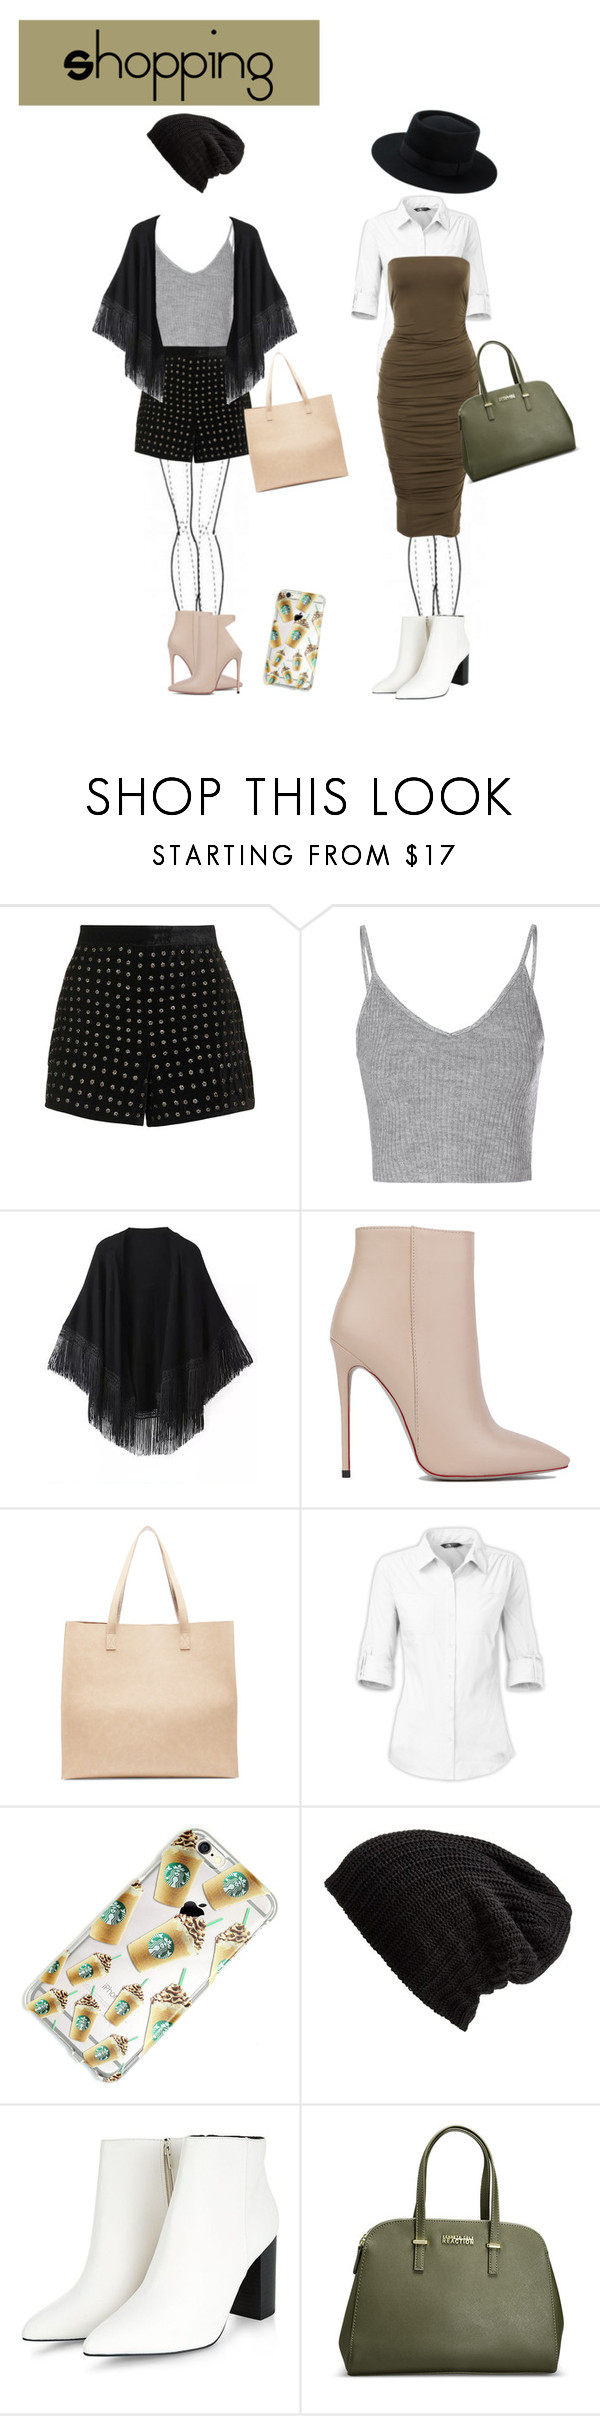 """""""Shopping"""" by vivianrose-11 on Polyvore featuring Topshop, Glamorous, Relaxfeel, Akira Black Label, Sole Society, The North Face, Free People and Avenue"""